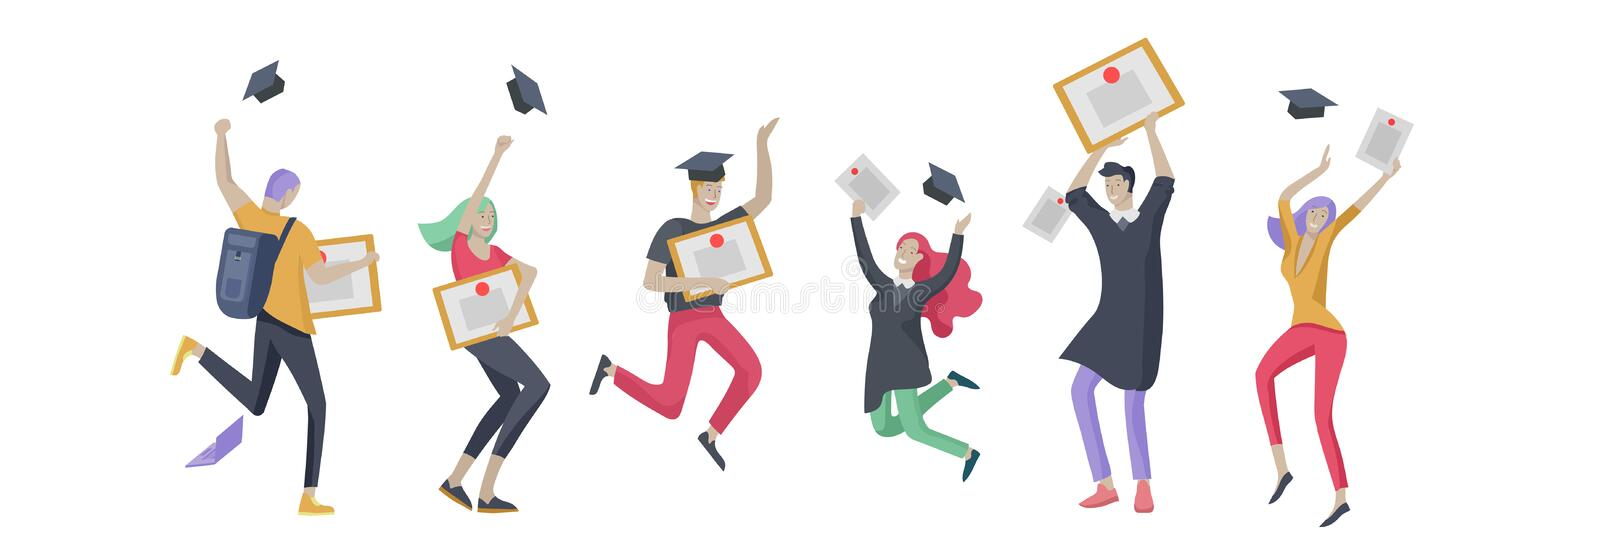 Group smiling graduates people in graduation gowns holding diplomas and happy Jumping. Vector illustration concept stock illustration